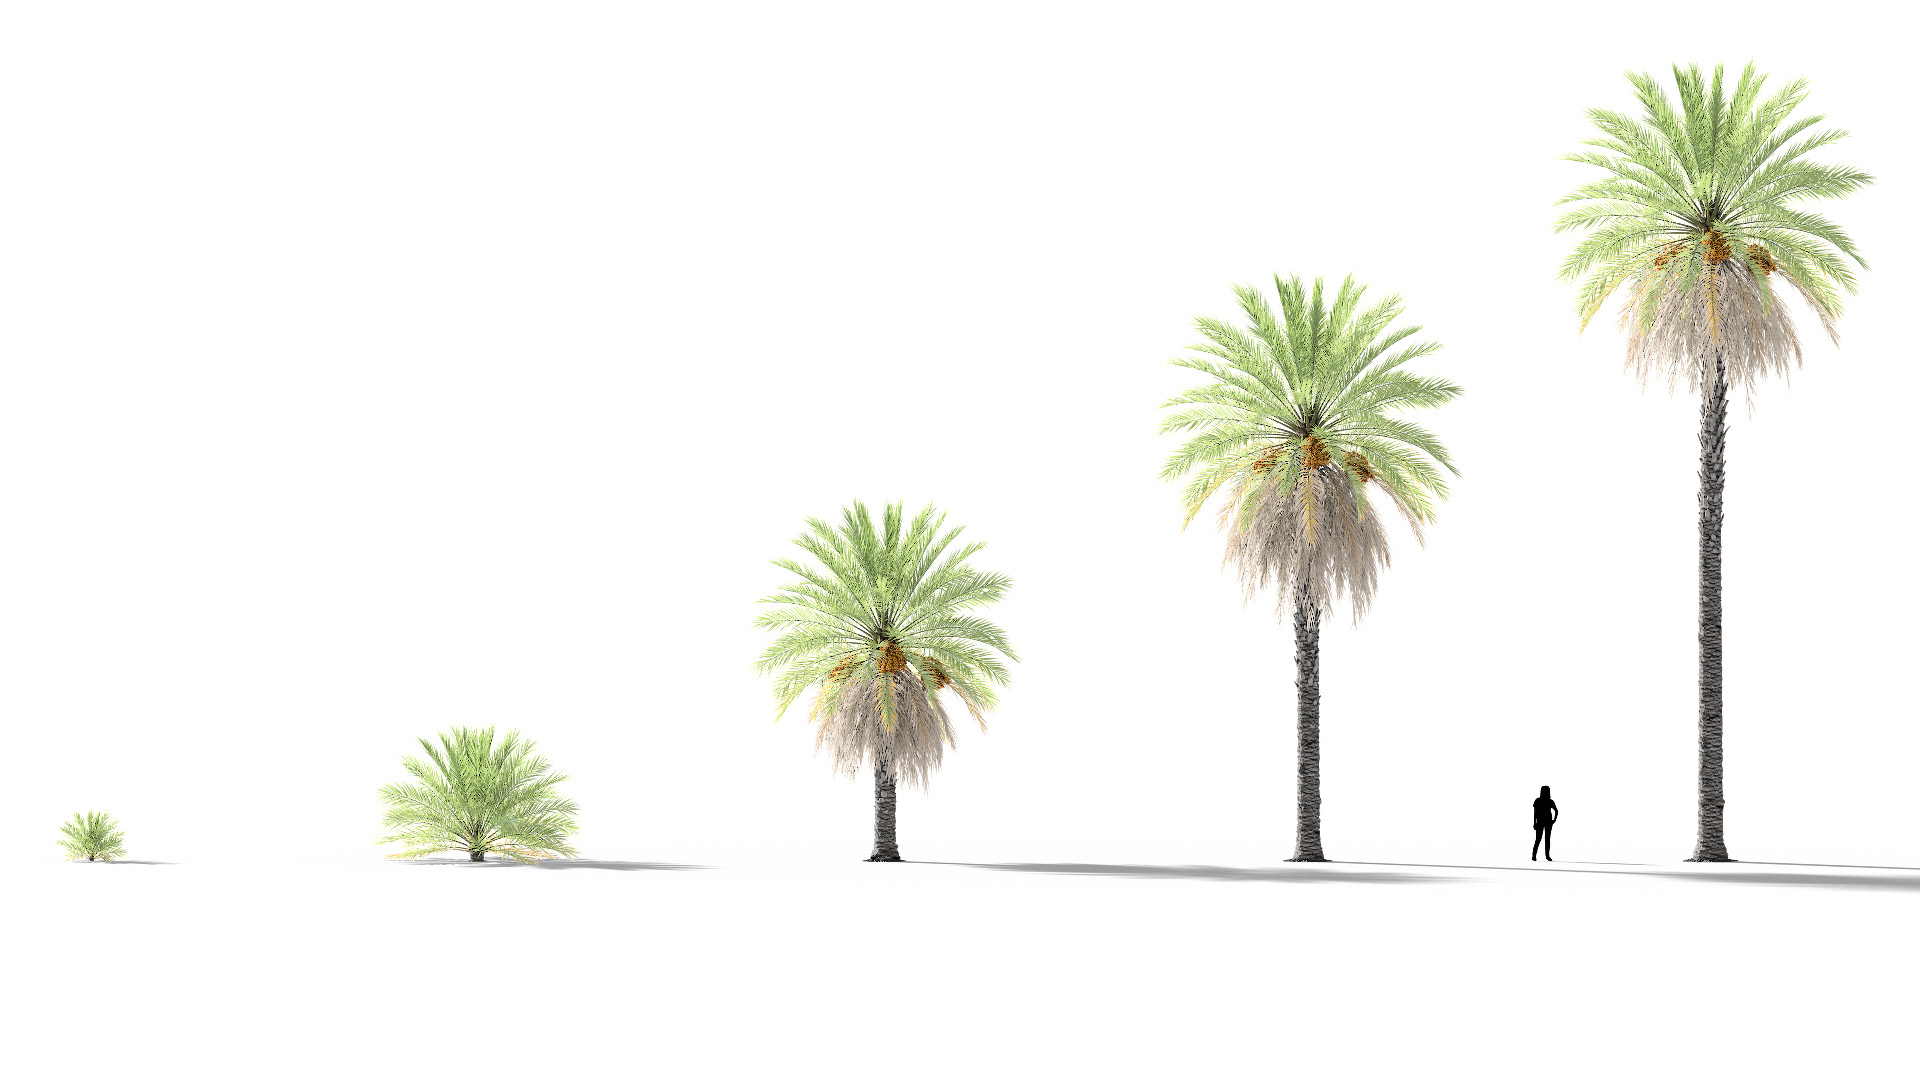 3D model of the Date palm Phoenix dactylifera maturity variations